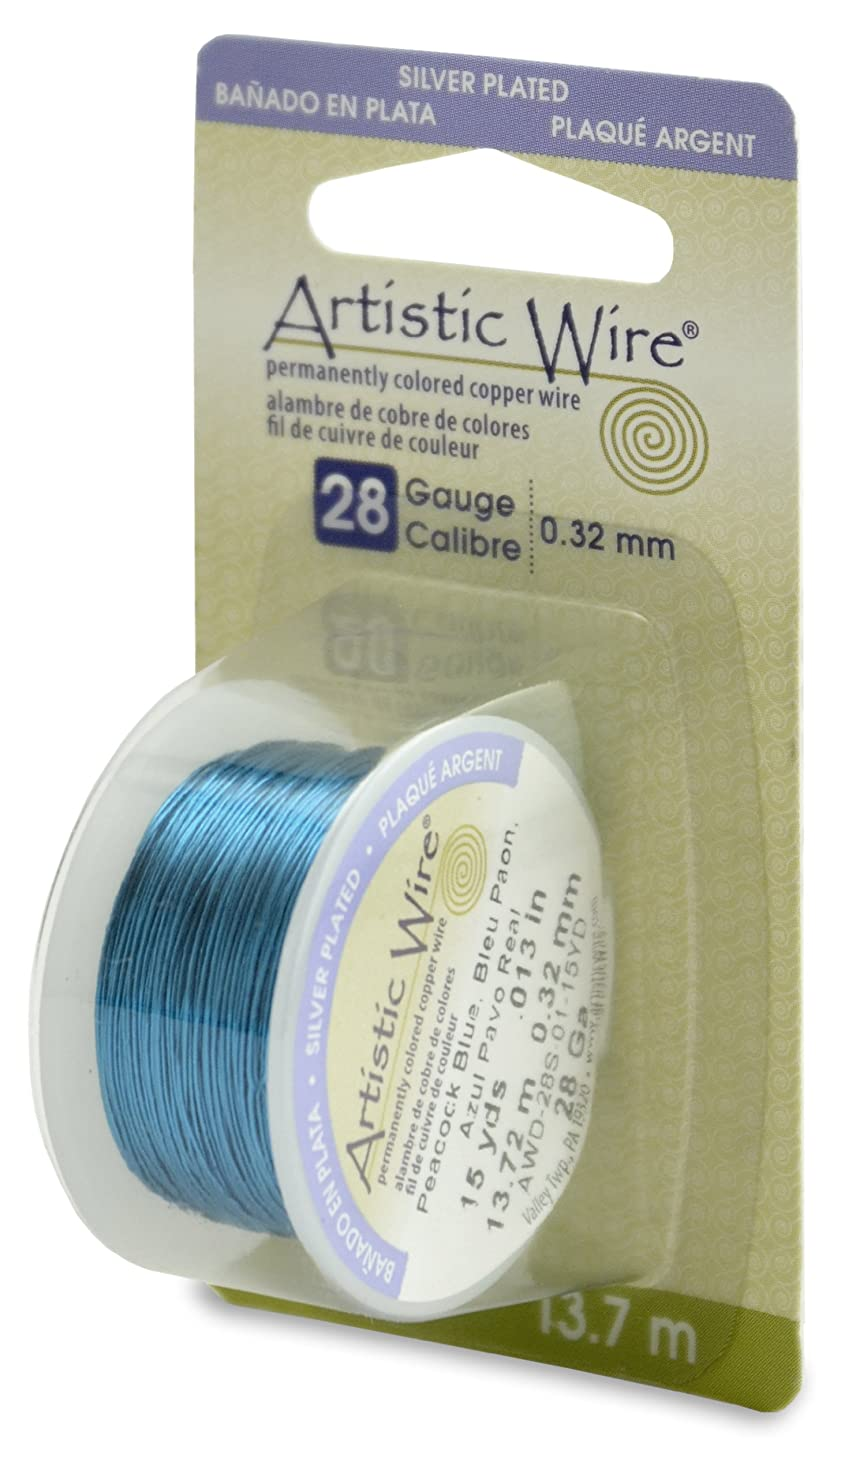 Artistic Wire 28-Gauge Silver Plated Peacock Blue Wire, 15-Yards